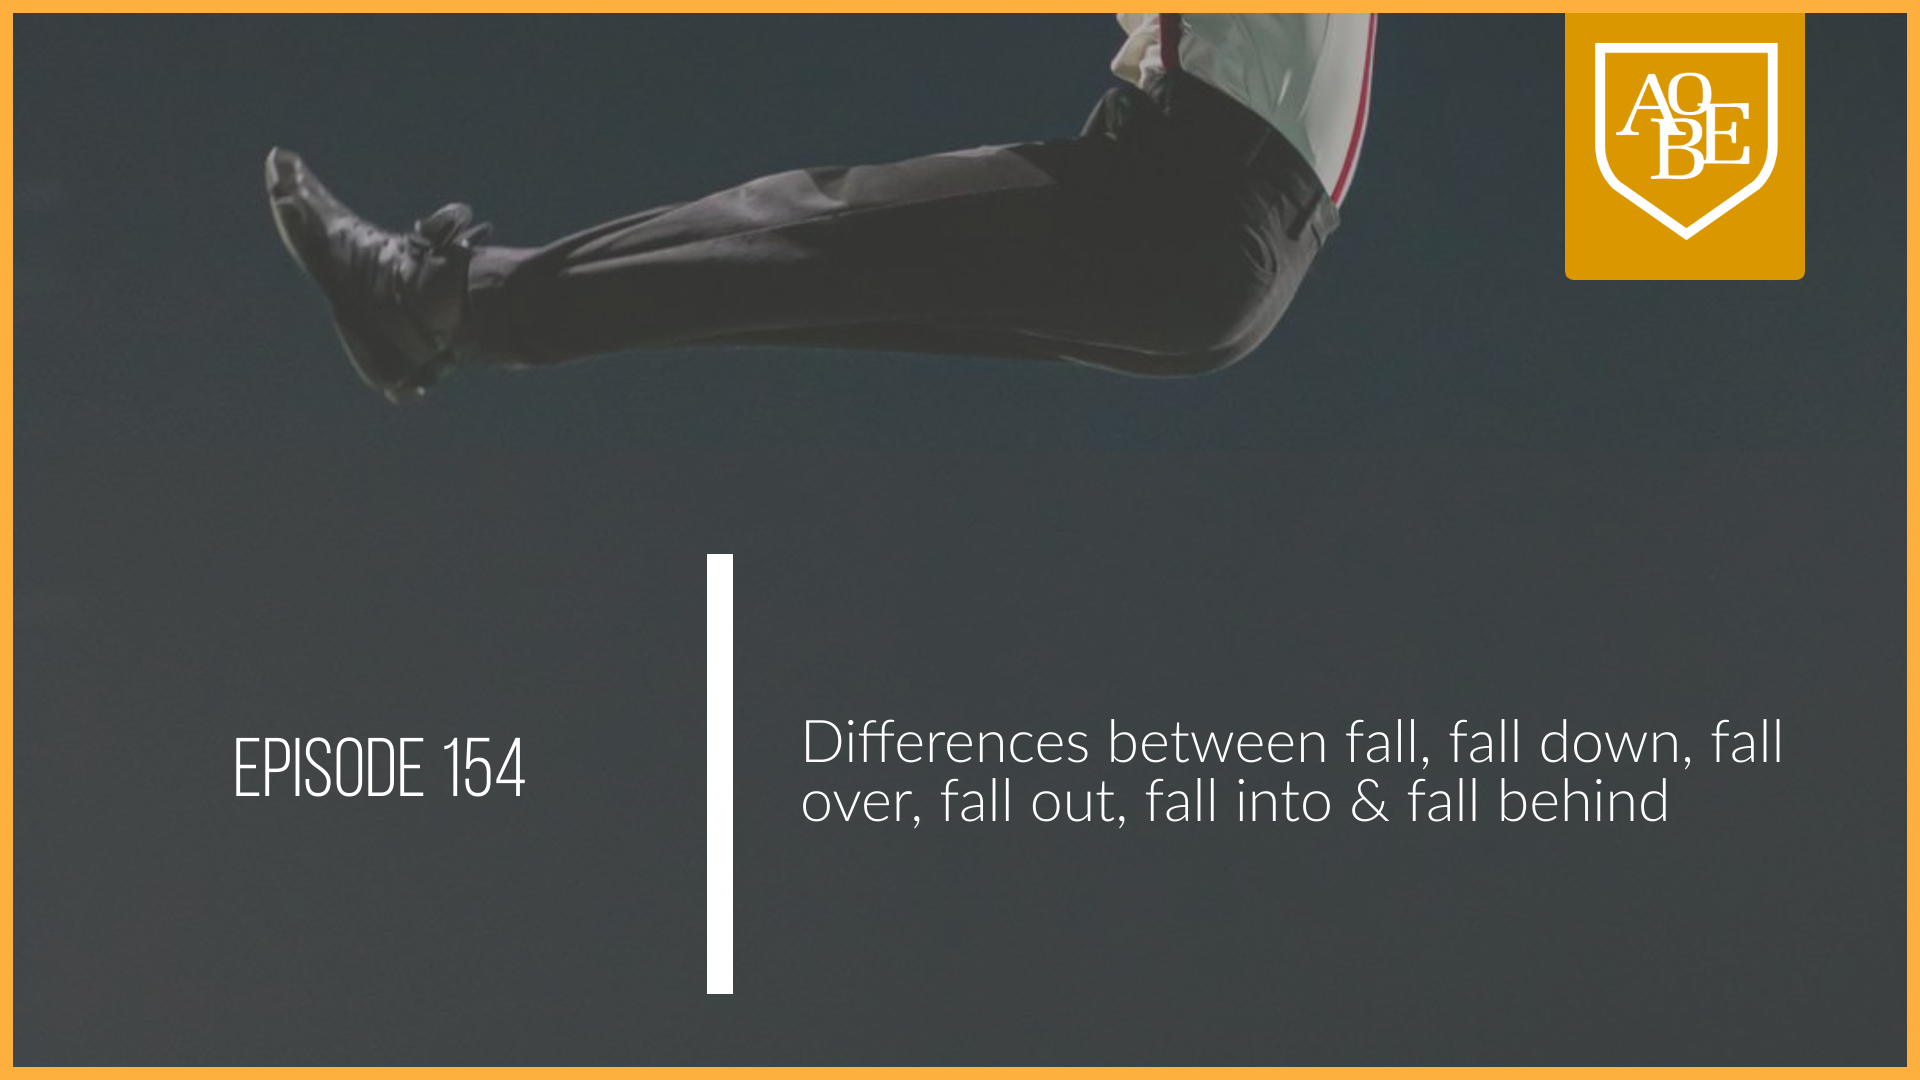 Differences between fall, fall down, fall over, fall out, fall into, fall behind